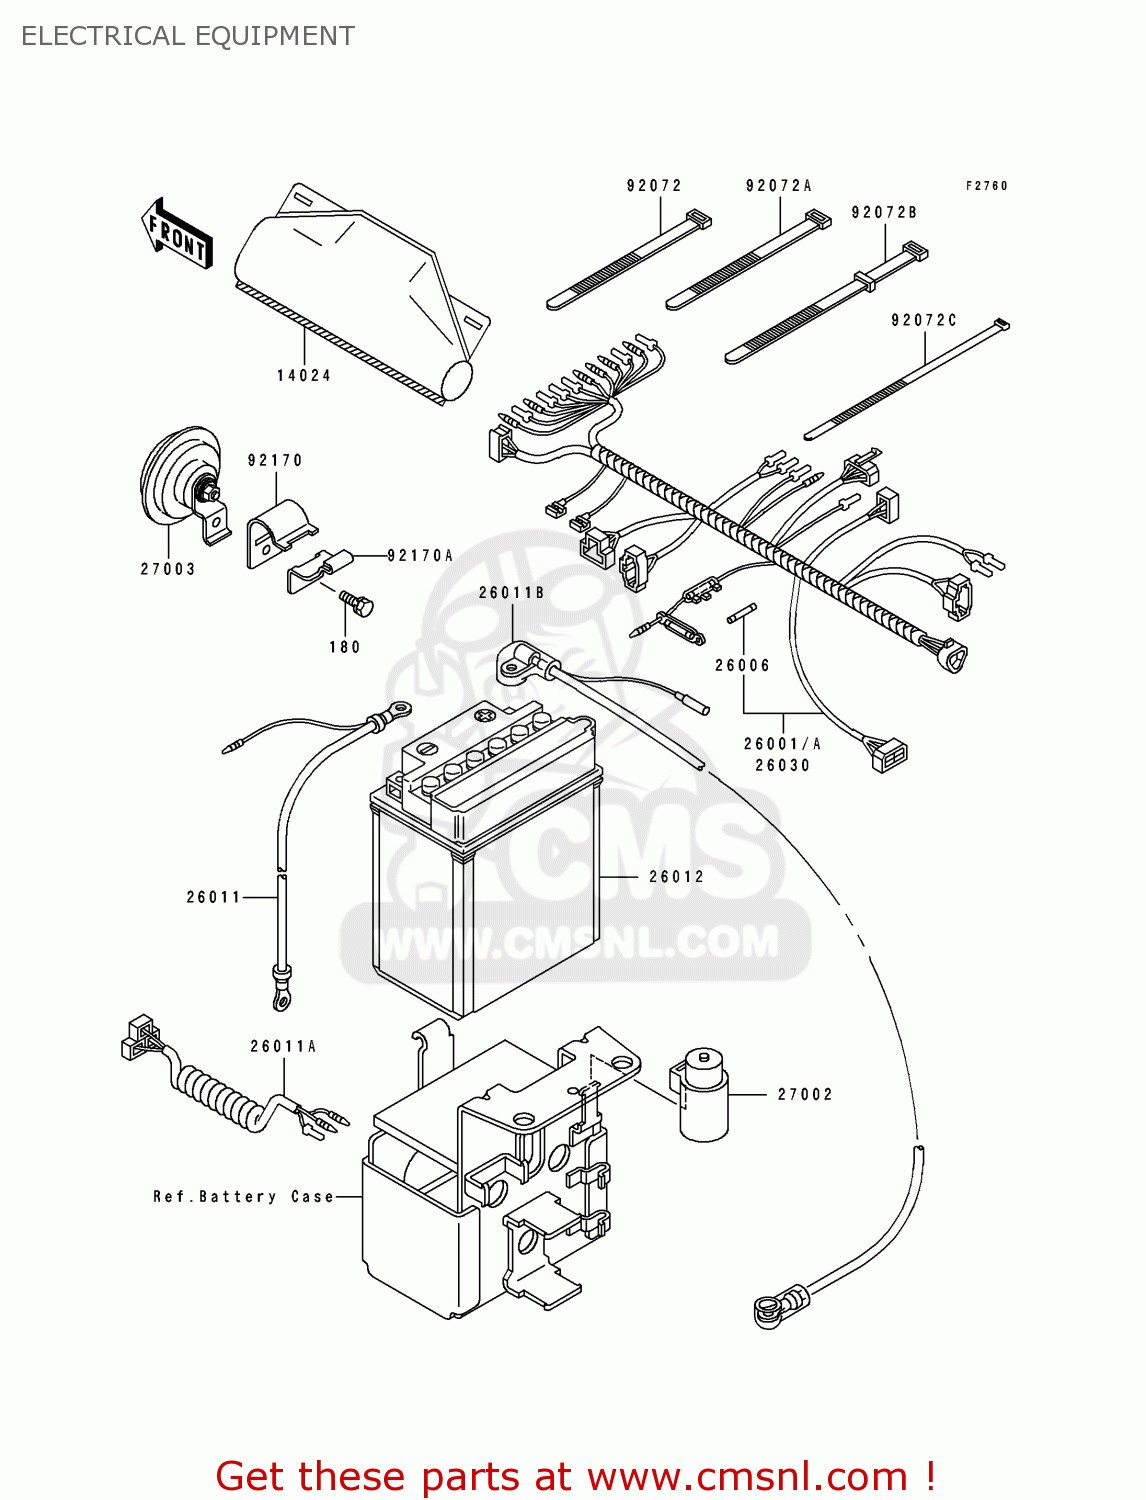 1994 kawasaki 220 bayou wiring diagram how to set a formal table for dinner 300 new image